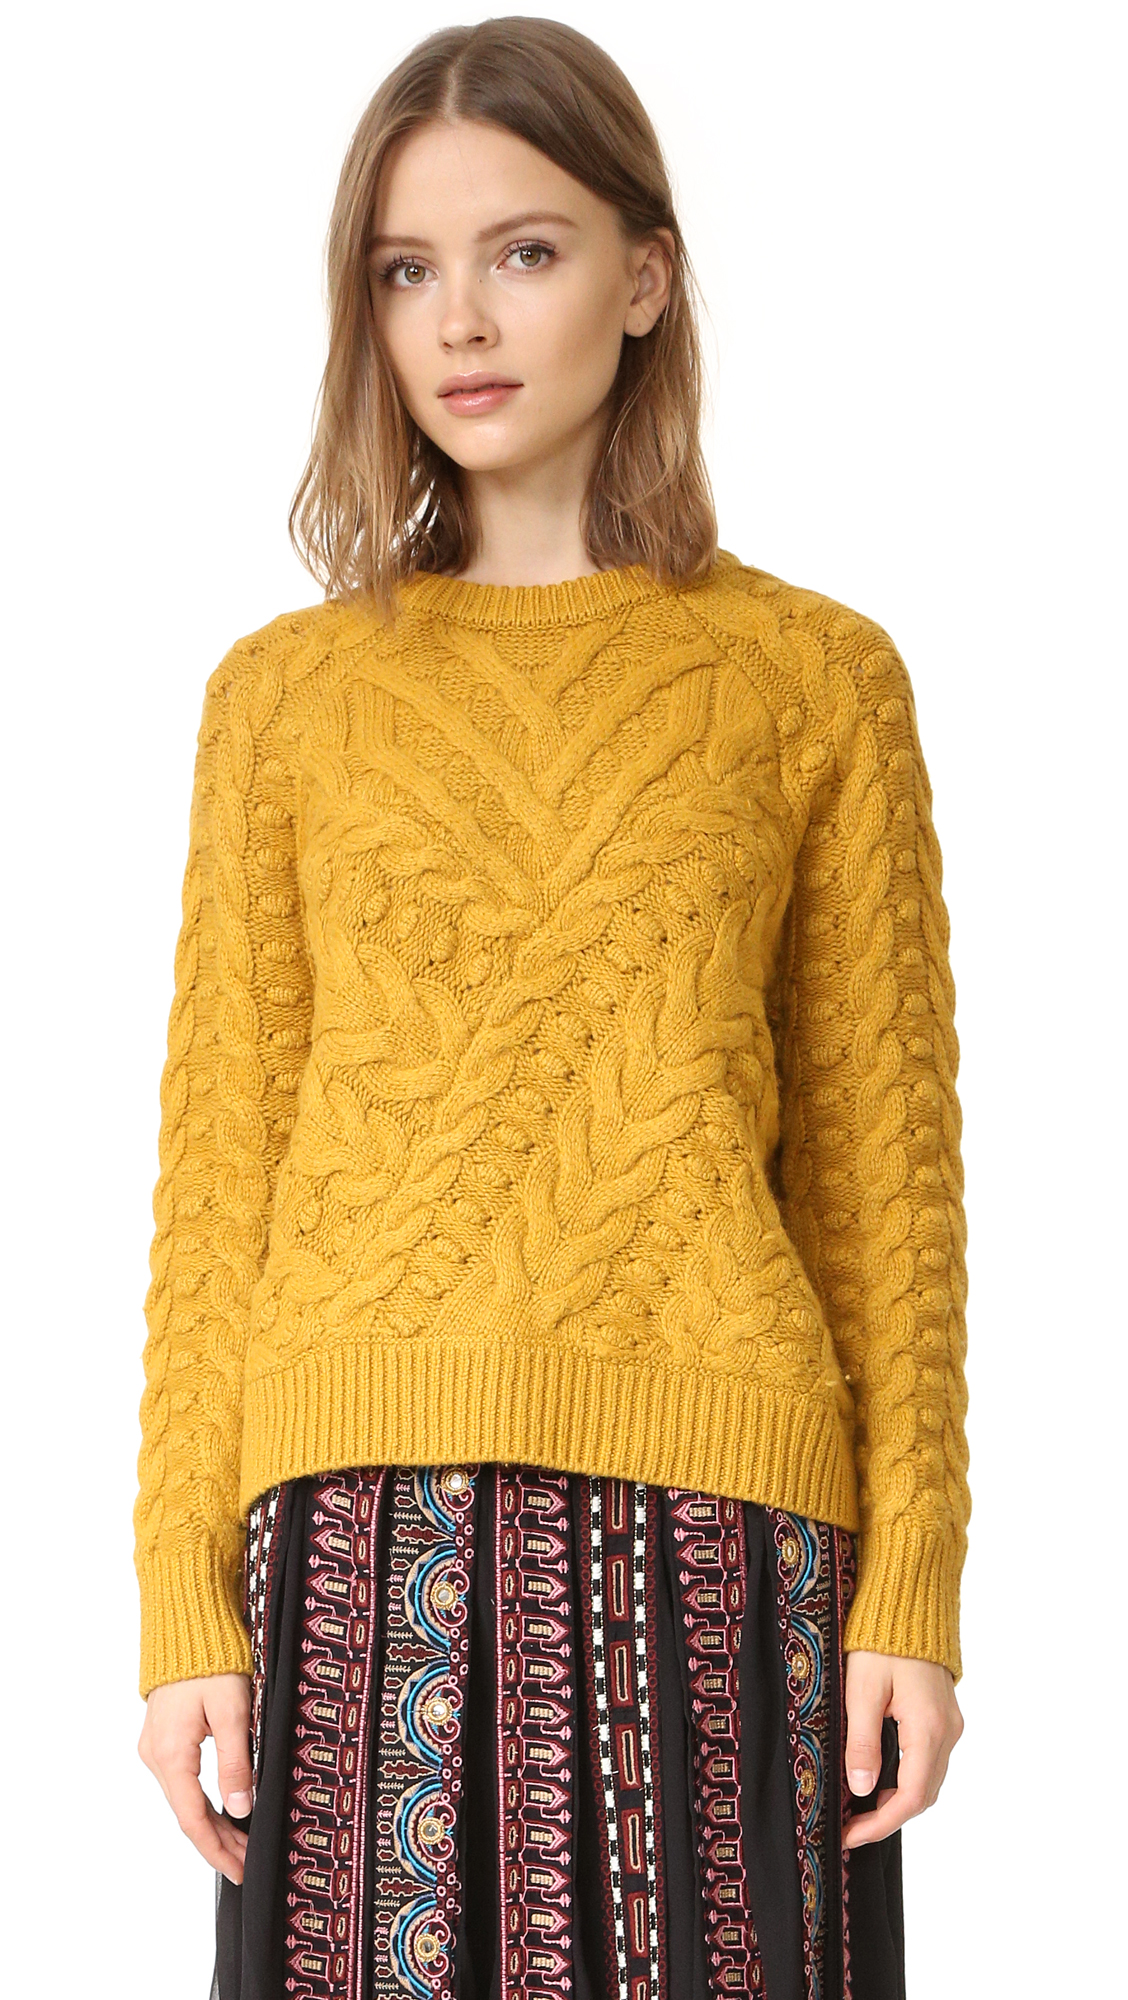 Cable designs lend rich texture to this Scotch & Soda/Maison Scotch sweater. Ribbed edges. Long raglan sleeves. Fabric: Knit. 45% wool/30% viscose/18% nylon/5% cashmere/2% polyester. Hand wash. Imported, China. Measurements Length: 22.75in / 58cm, from shoulder Measurements from